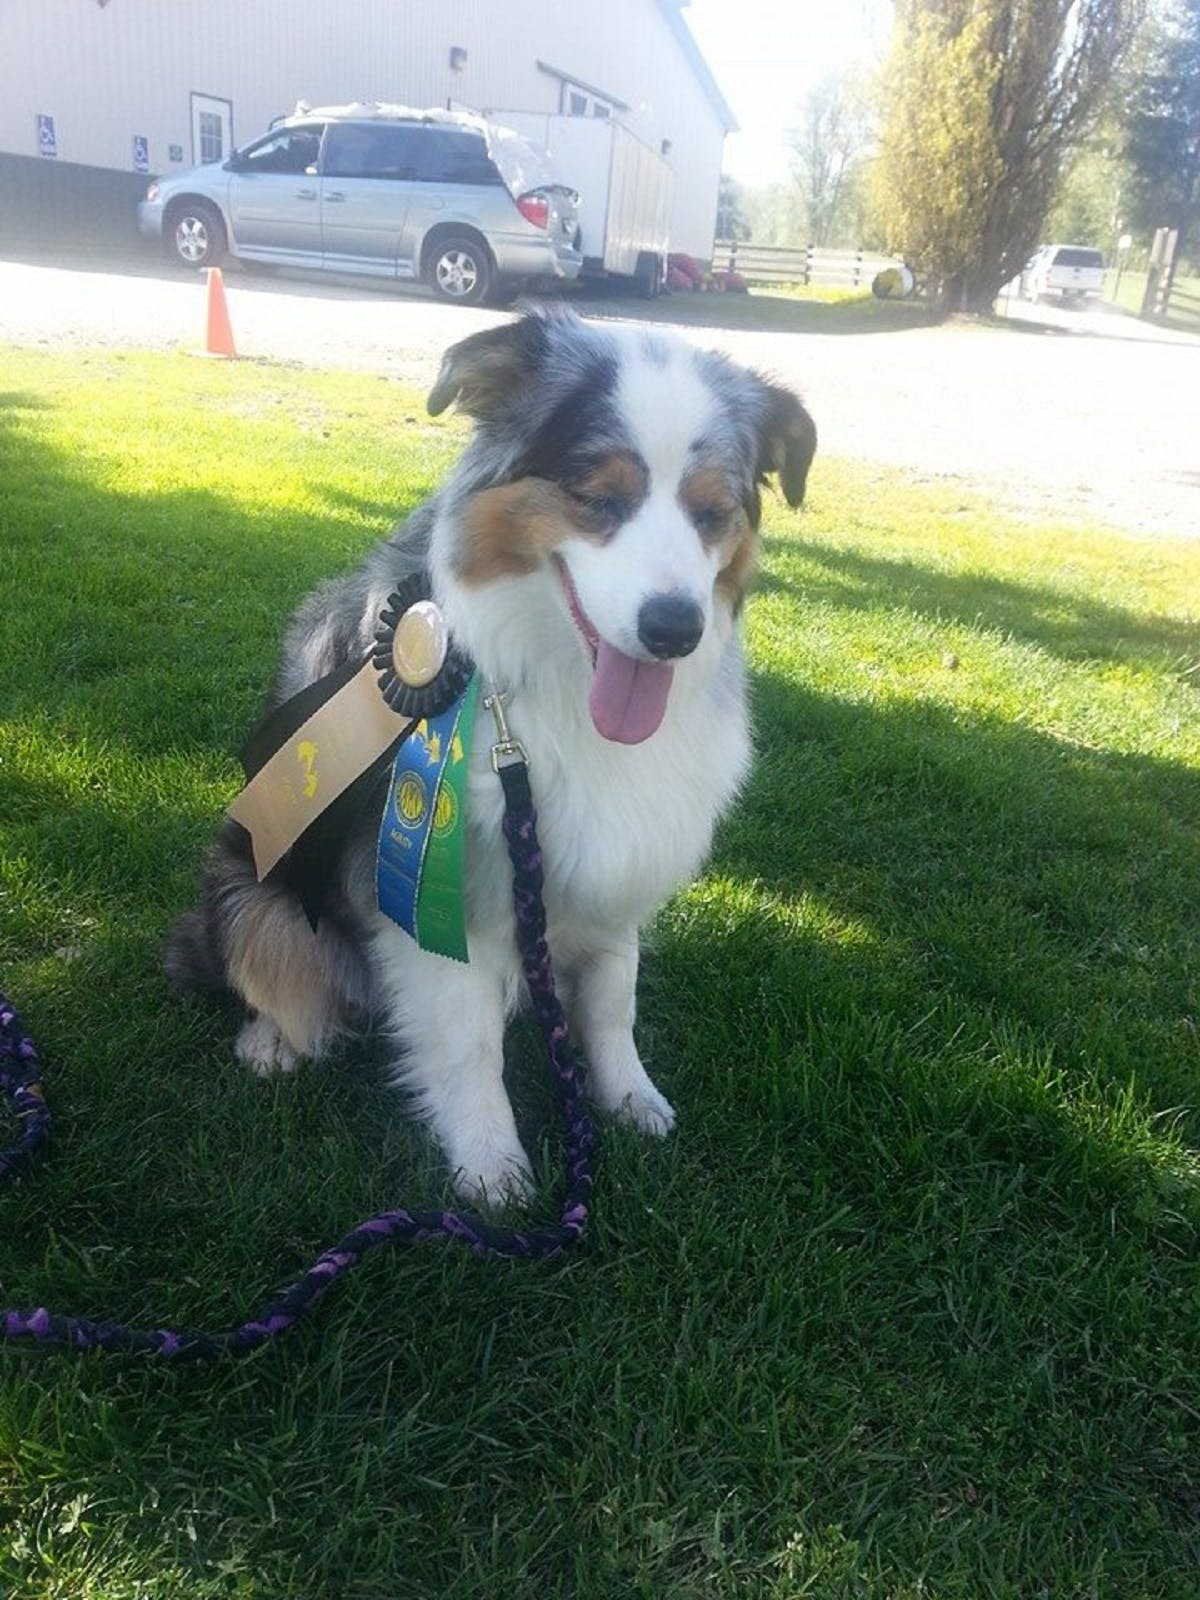 Sparrow the dog wearing ribbons